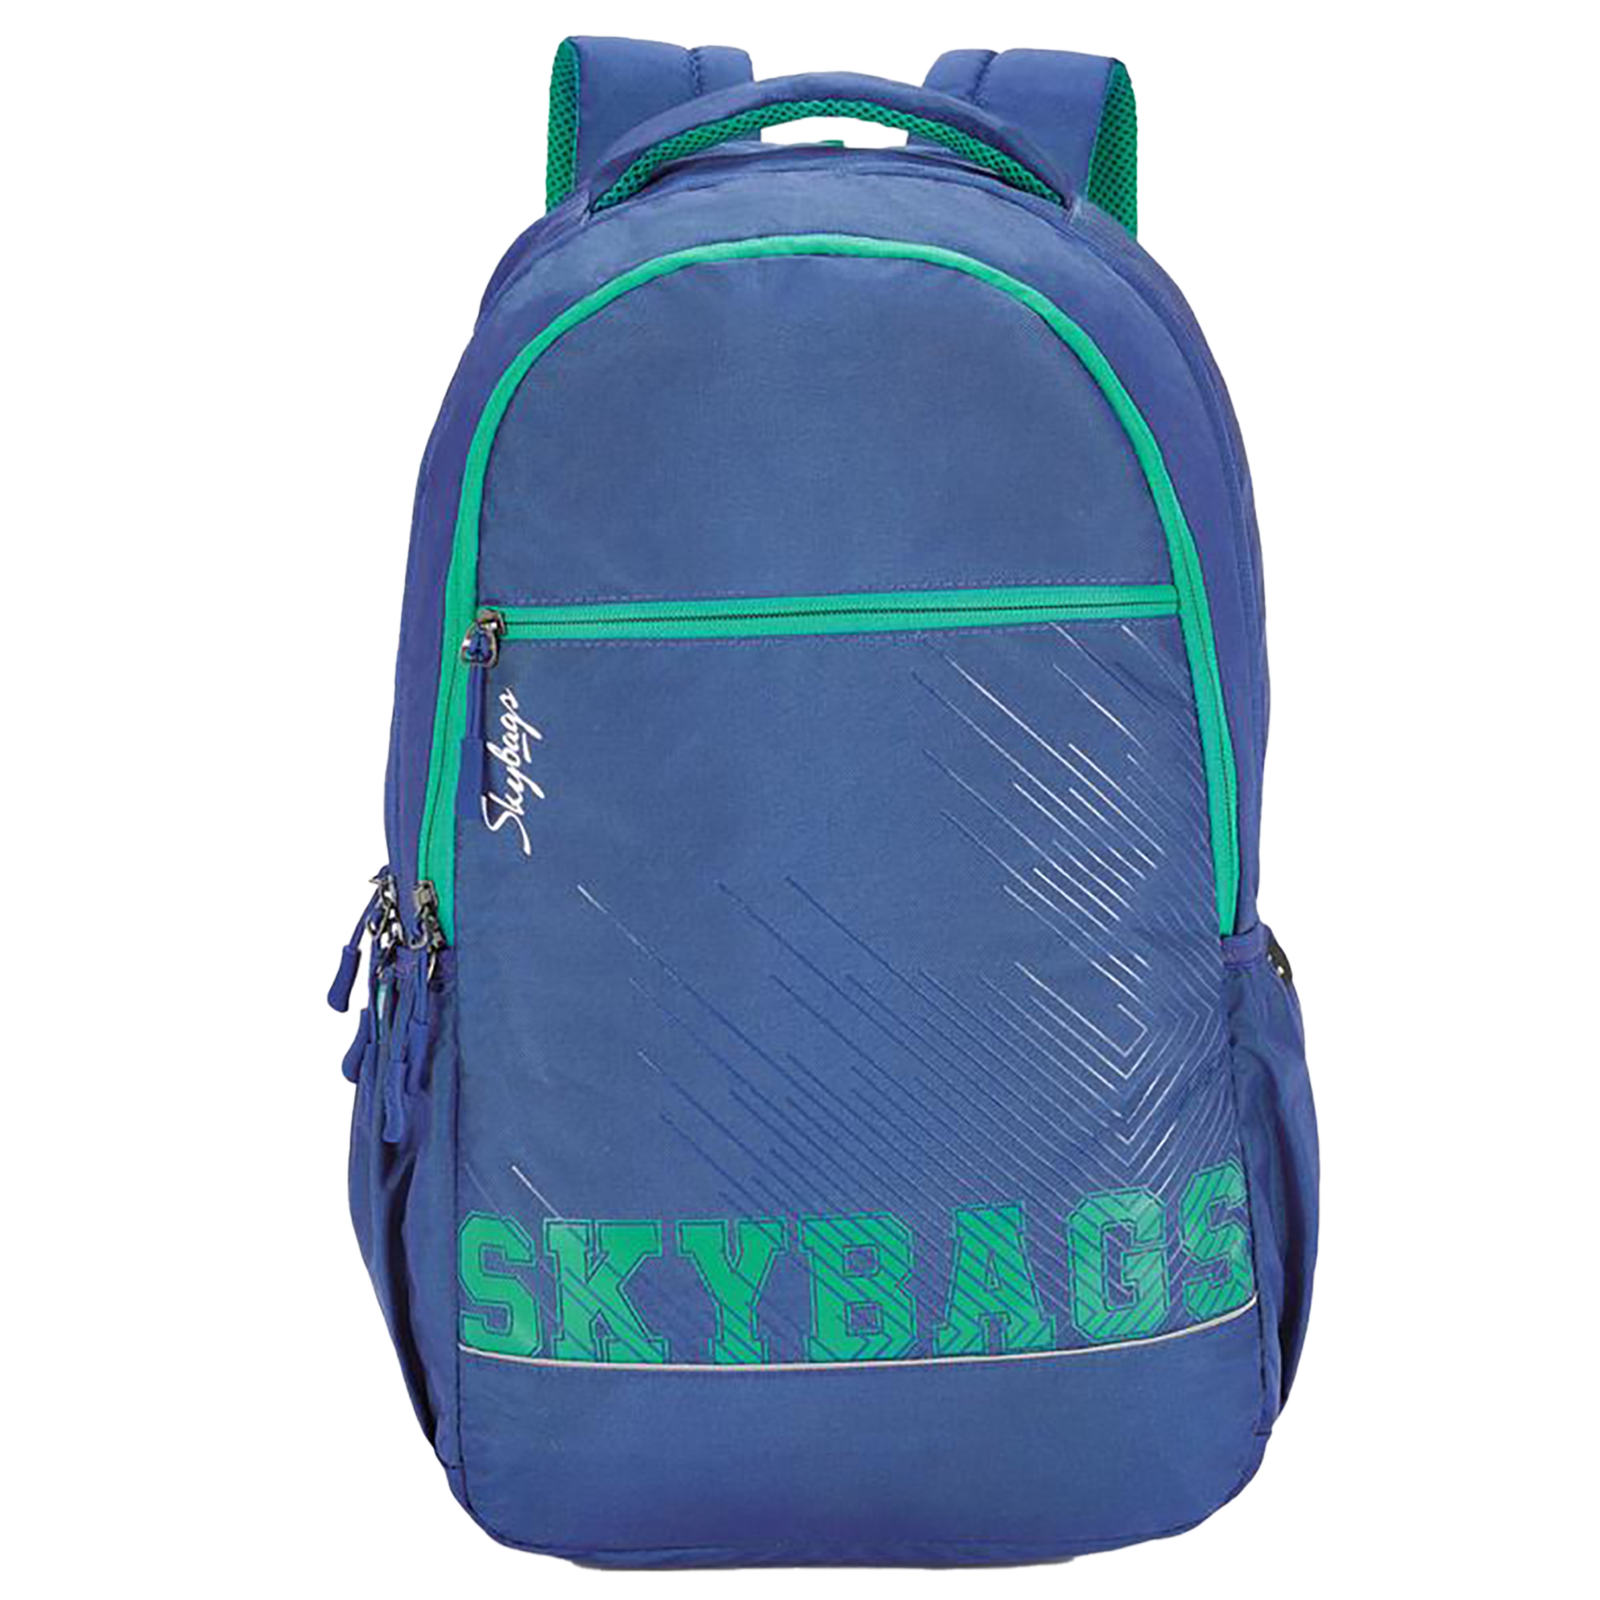 Sky Bags Campus Plus 01 30 Litres Gucci Fabric Backpack for 17 Inch Laptop (Water Resistant, LPBPCAP1BLU, Blue)_1